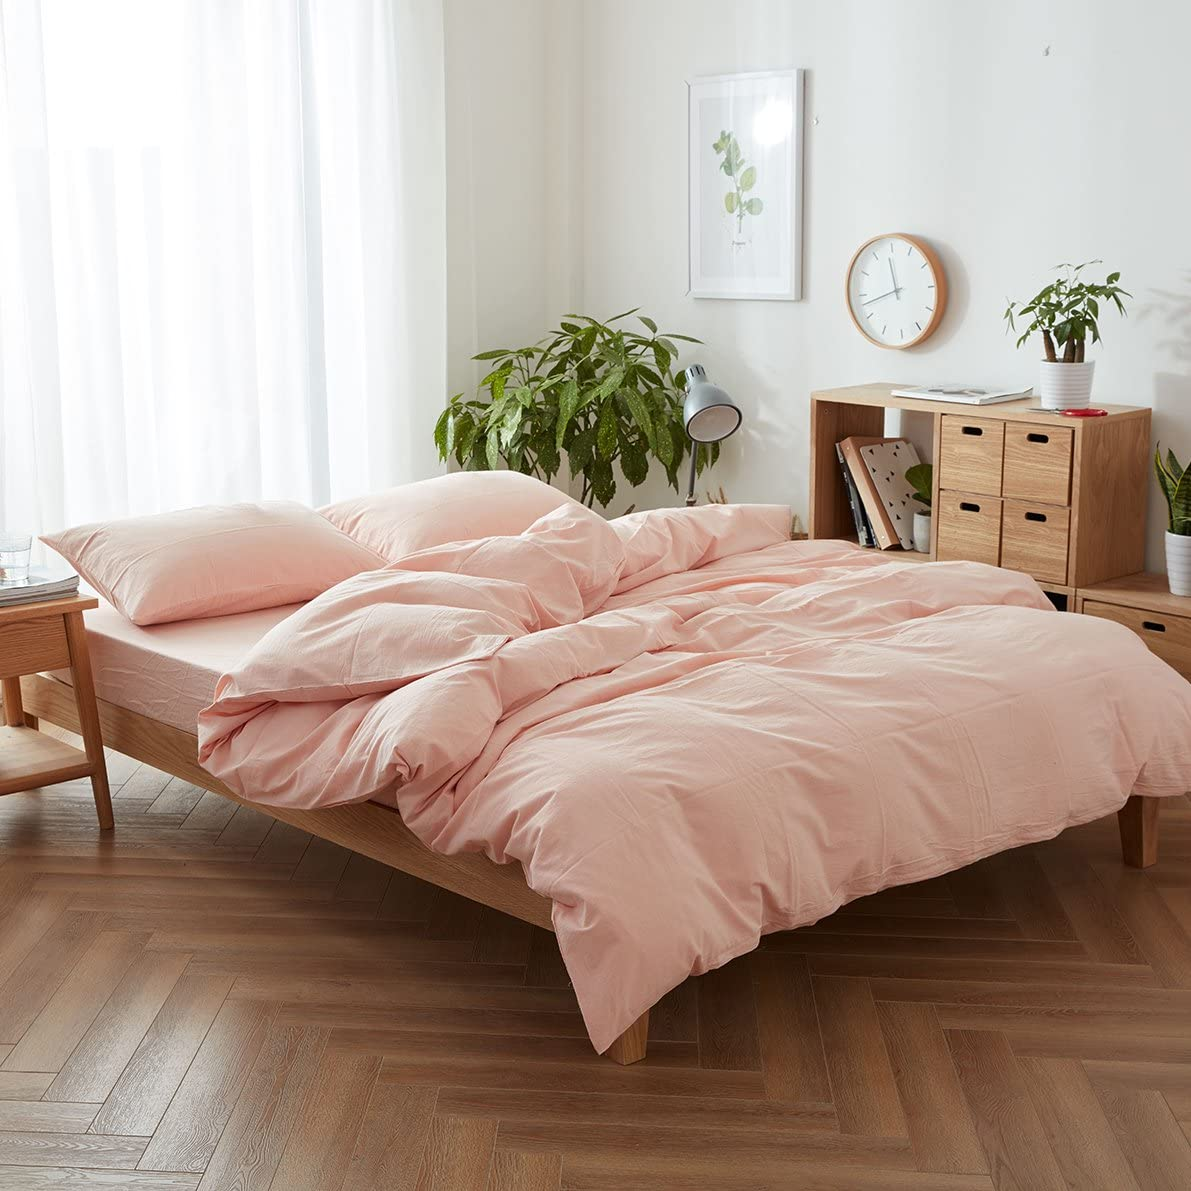 FACE TWO FACE 3-Piece Duvet Cover Queen,100% Washed Cotton Duvet Cover,Ultra Soft and Easy Care,Simple Style Bedding Set (Queen, Pink)